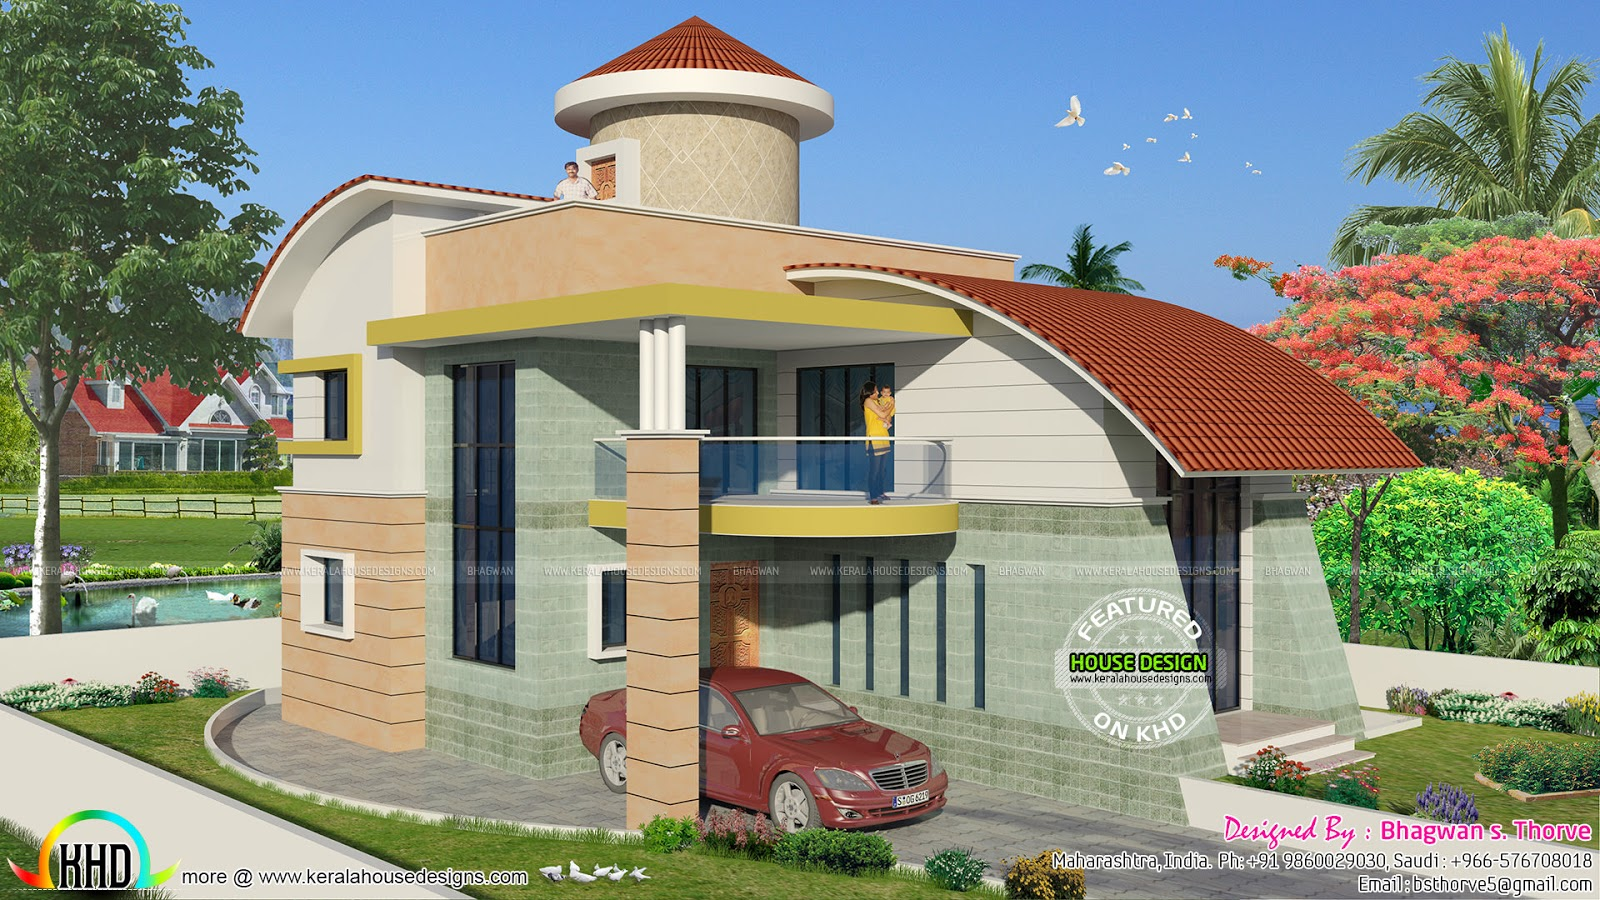 Kerala Home Design 900 Sq Feet Part - 22: Square Feet Details. Ground Floor Area : 1180 Sq.ft. First Floor Area : 900  Sq.ft. Total Area : 2080 Sq.ft. No. Of Bedrooms : 4. Design Style : Modern